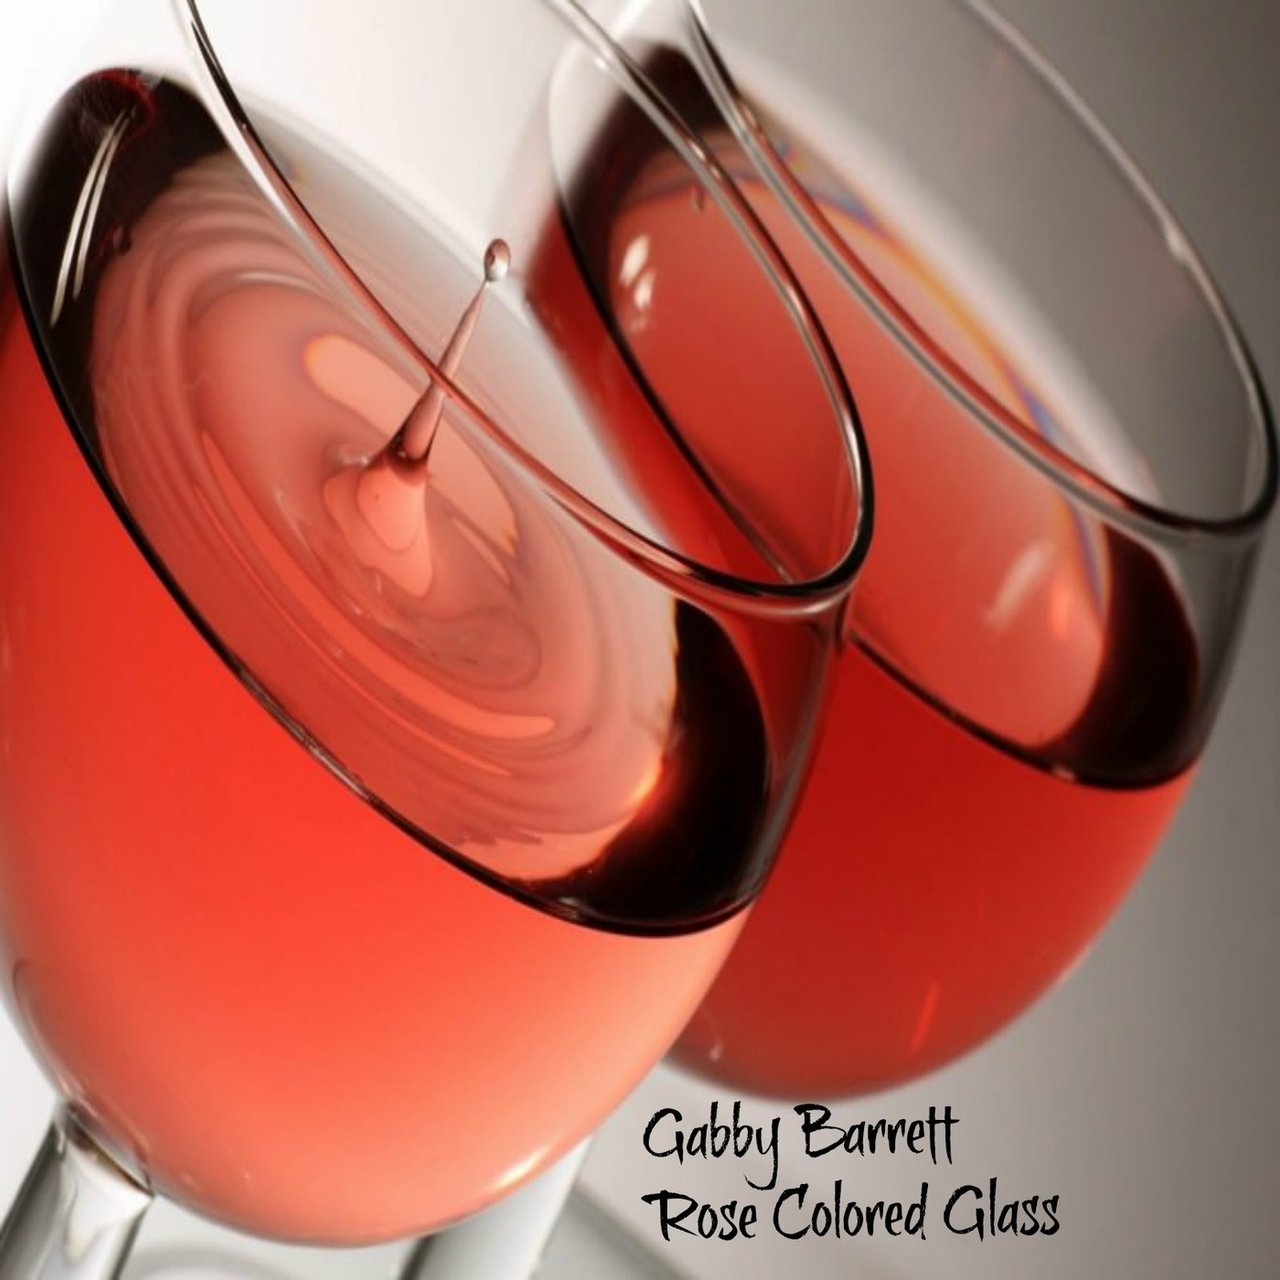 Gabby Barrett - Rose Colored Glass